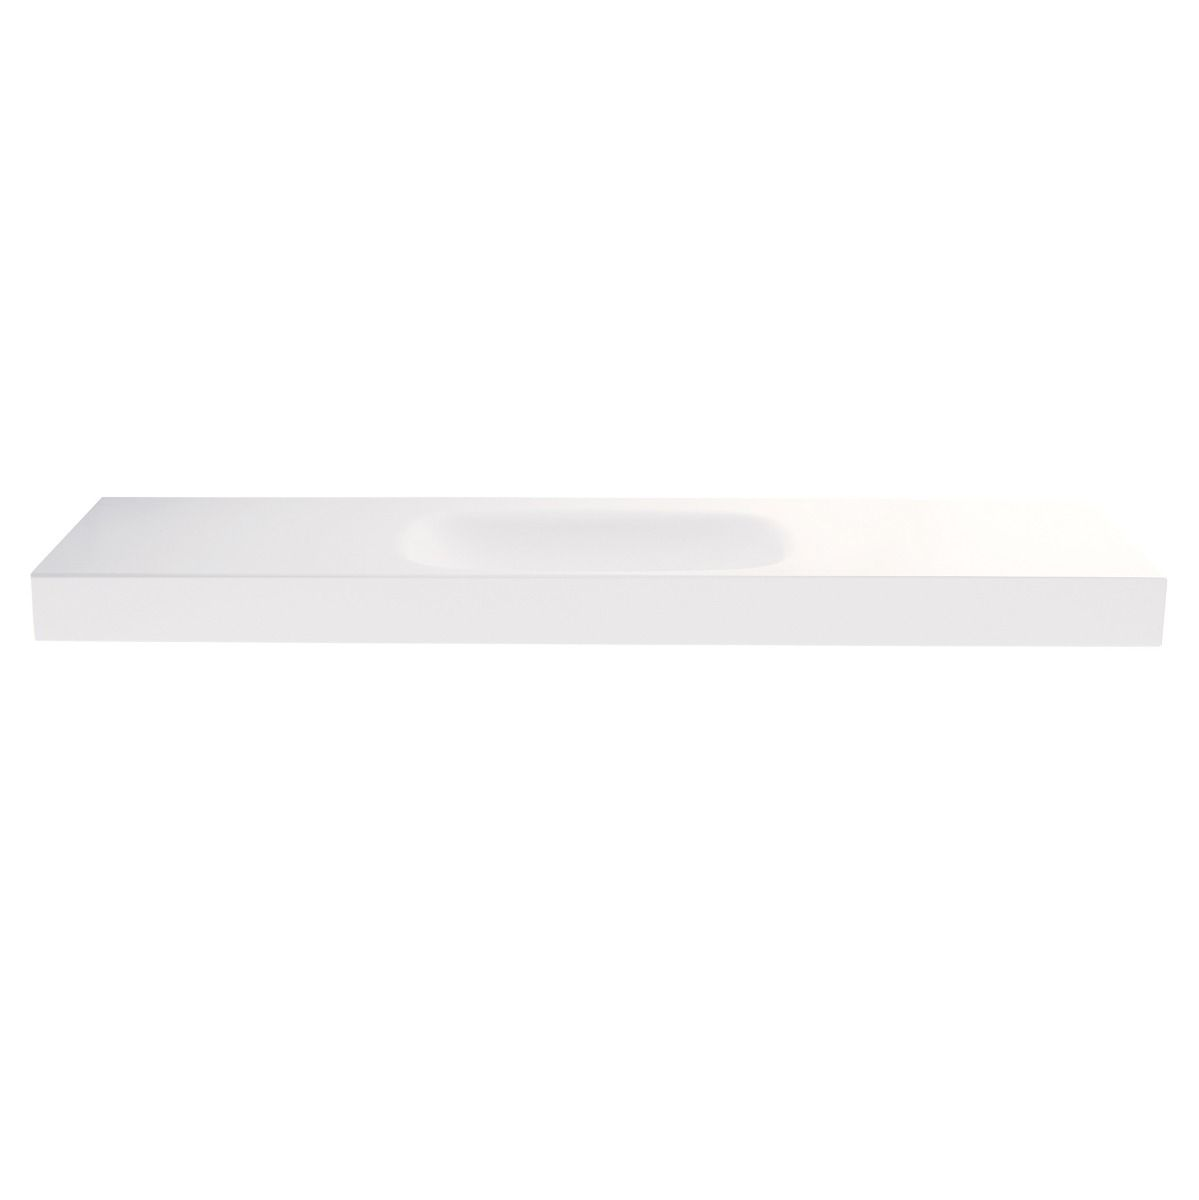 Whitechapel Countertop with Formed Basin/s